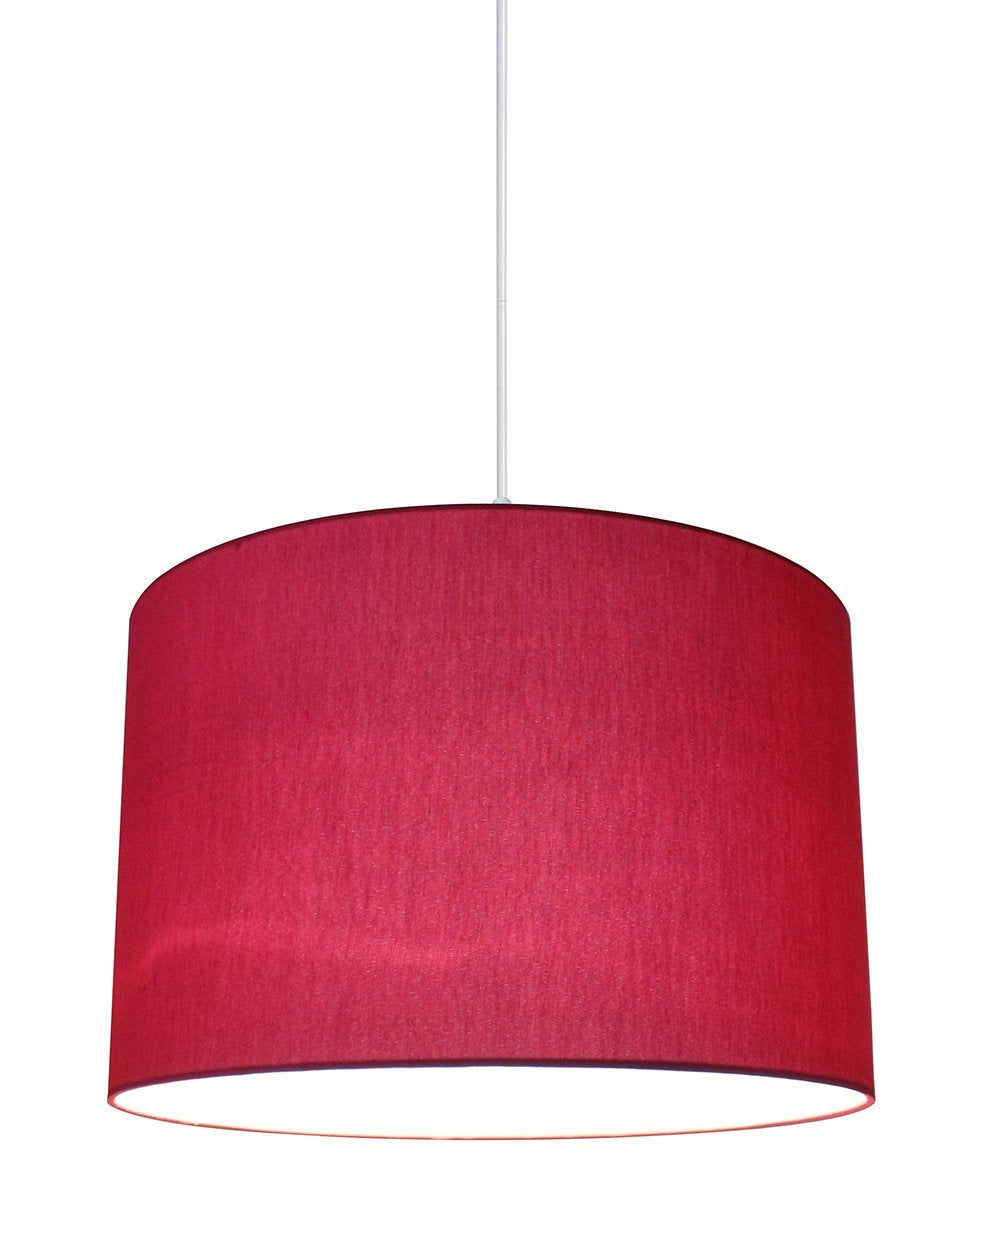 Marie Duo Color Shade Pendant with Hanging Light Kit, 15 1/2-inch Diameter, 10-inch Height